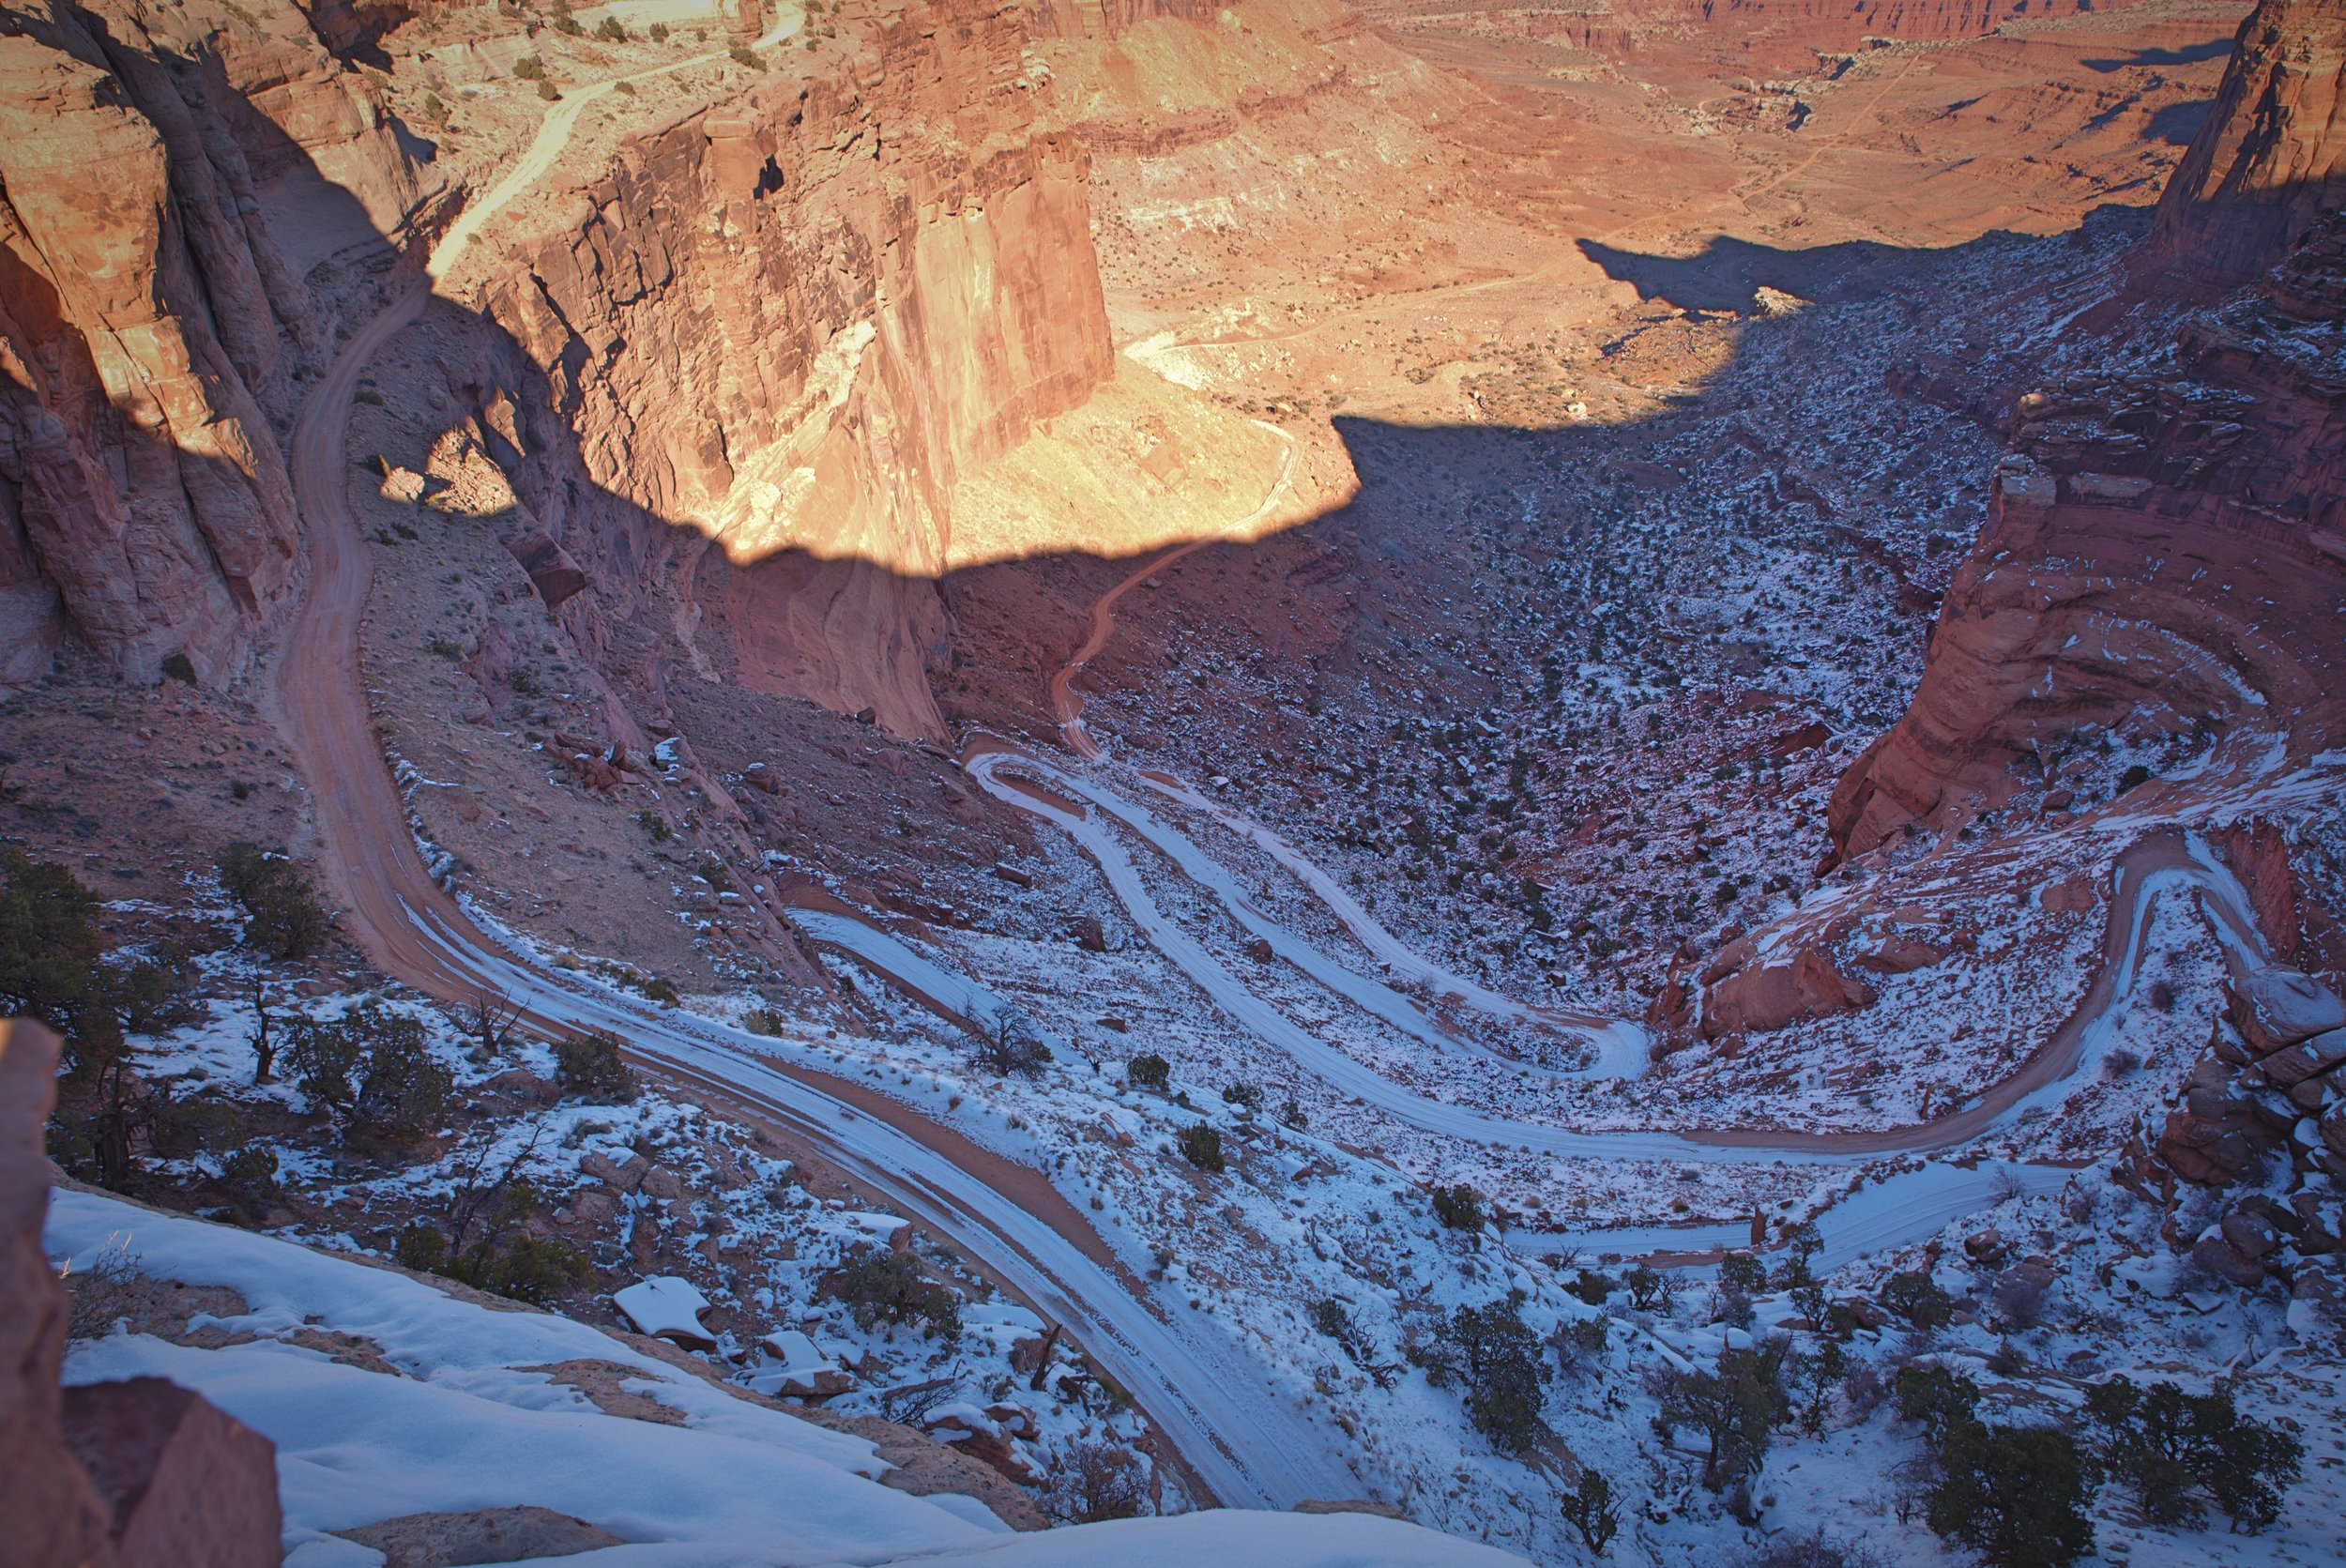 The Shafer Trail leads to the White Rim 4x4 road through these series of insane switchbacks.